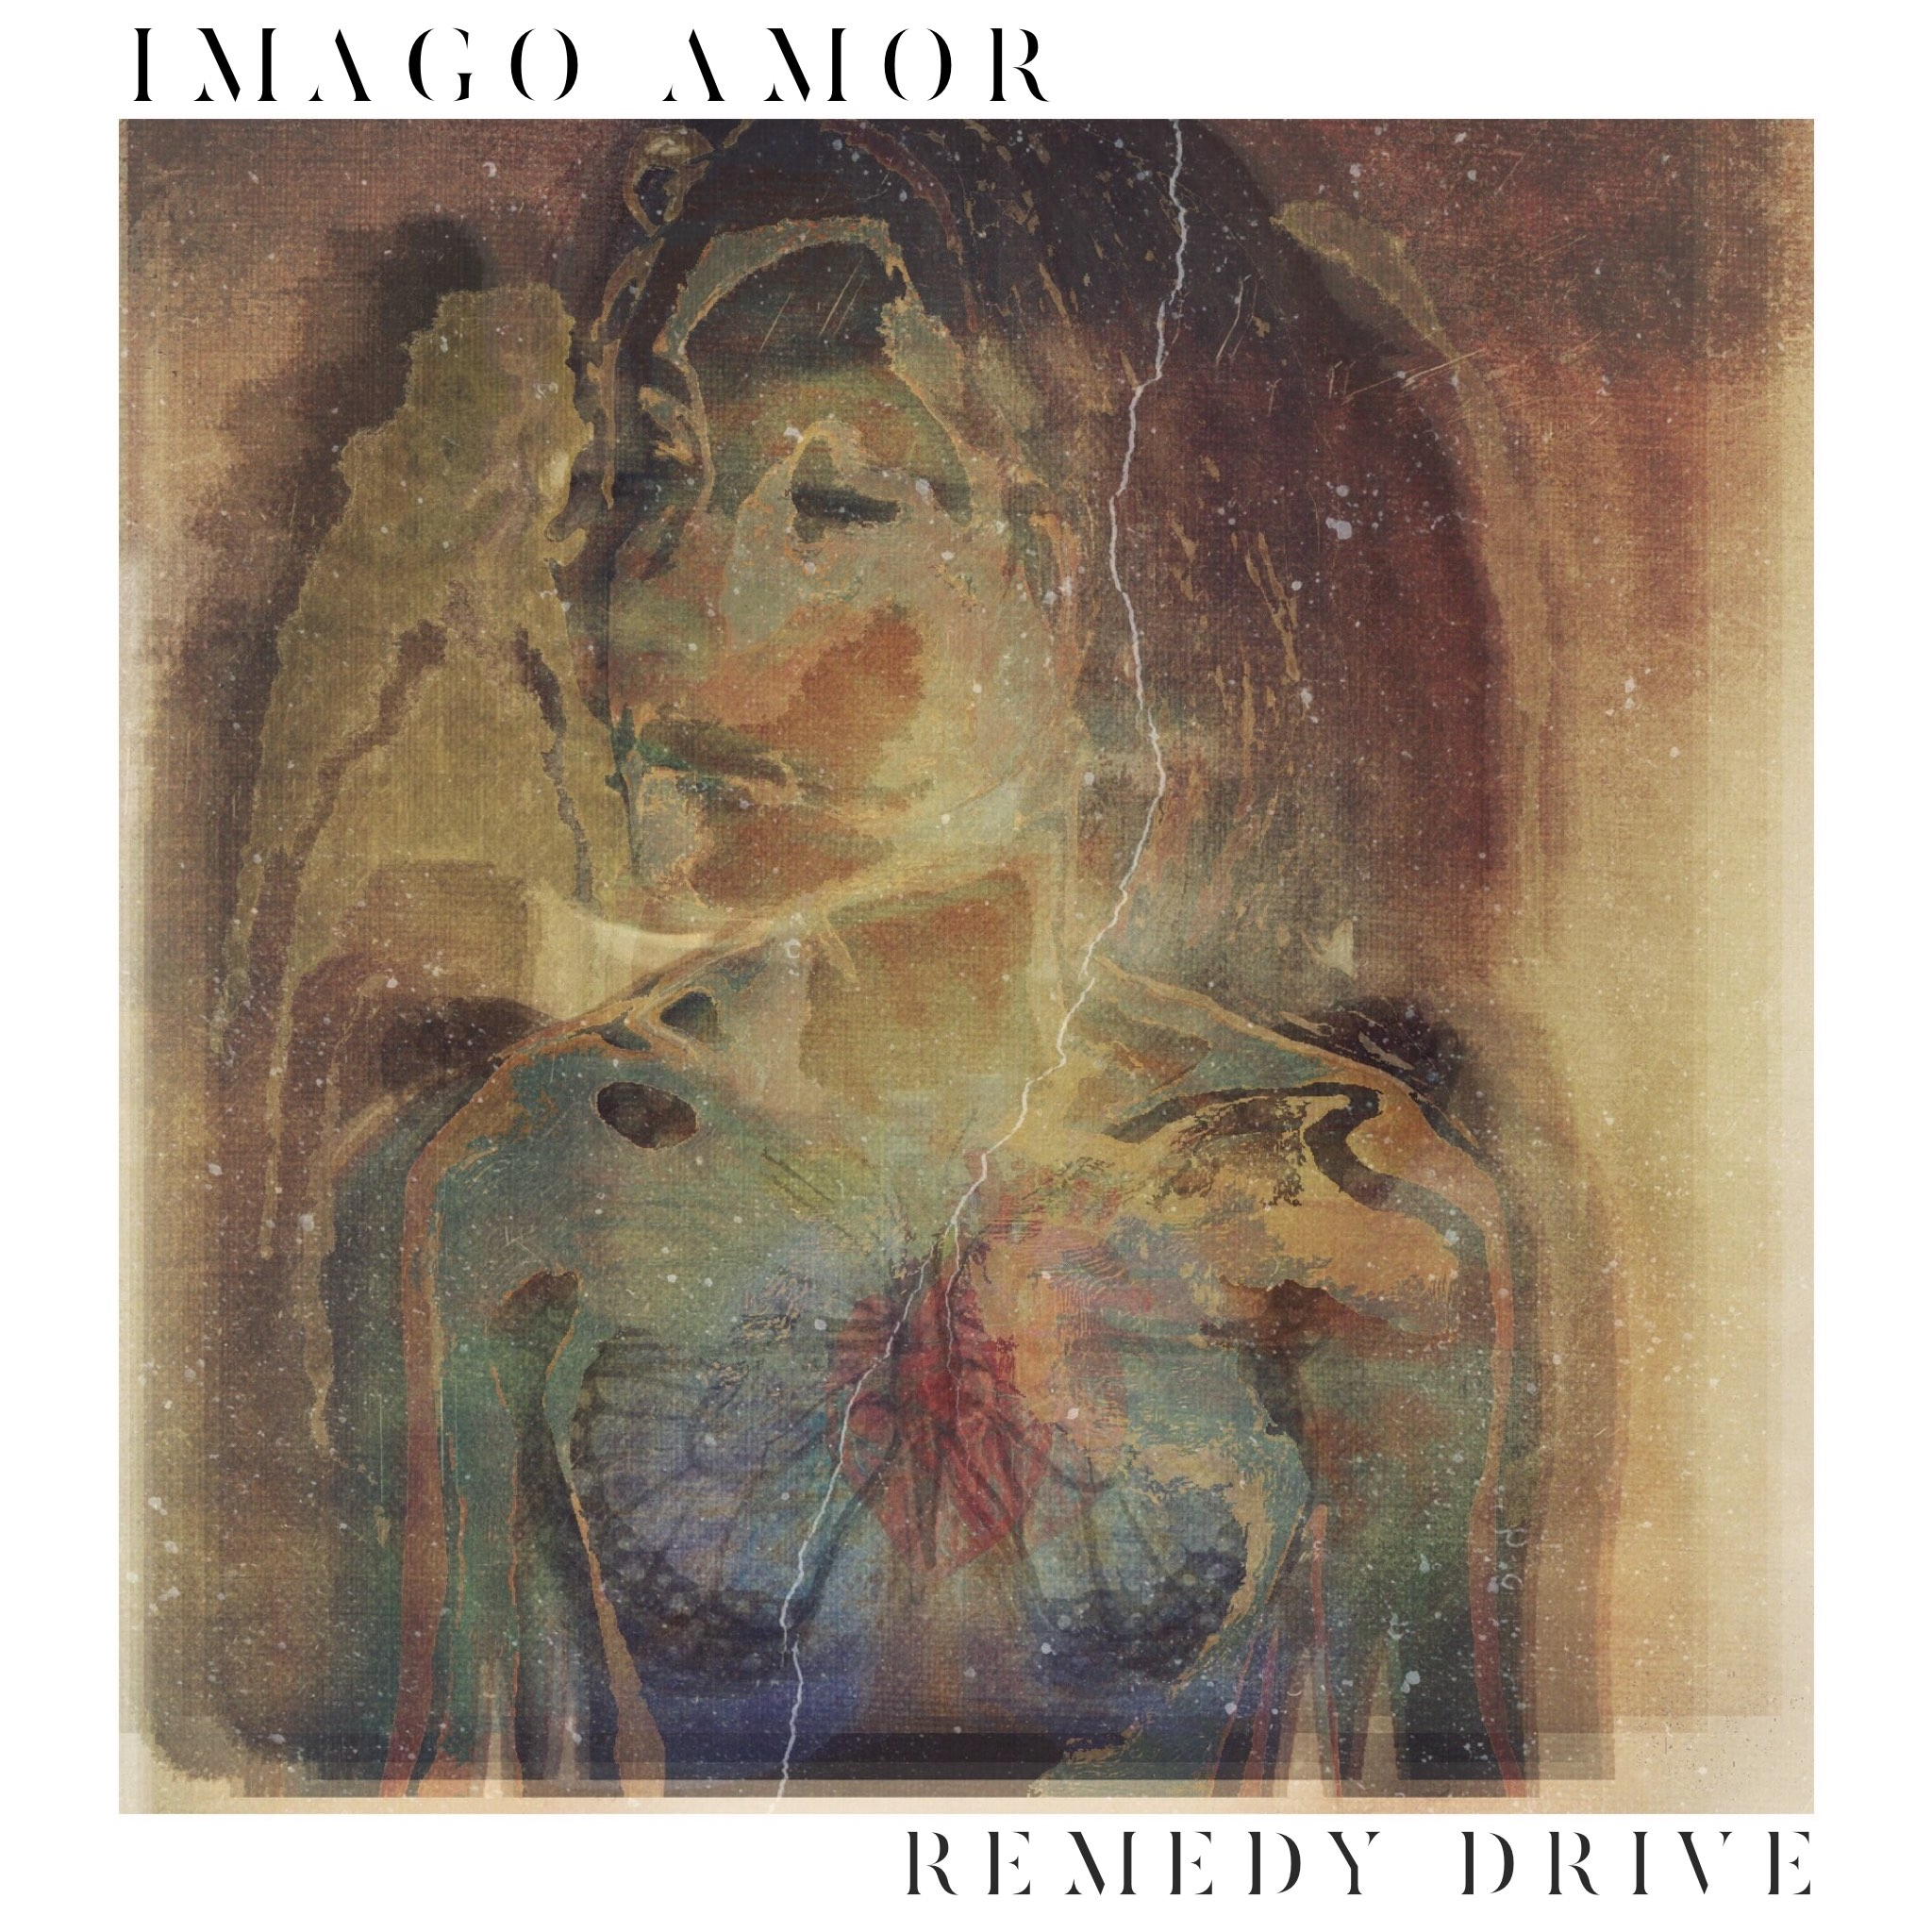 Music News: REMEDY DRIVE UNVEILS 'IMAGO AMOR' JANUARY 29